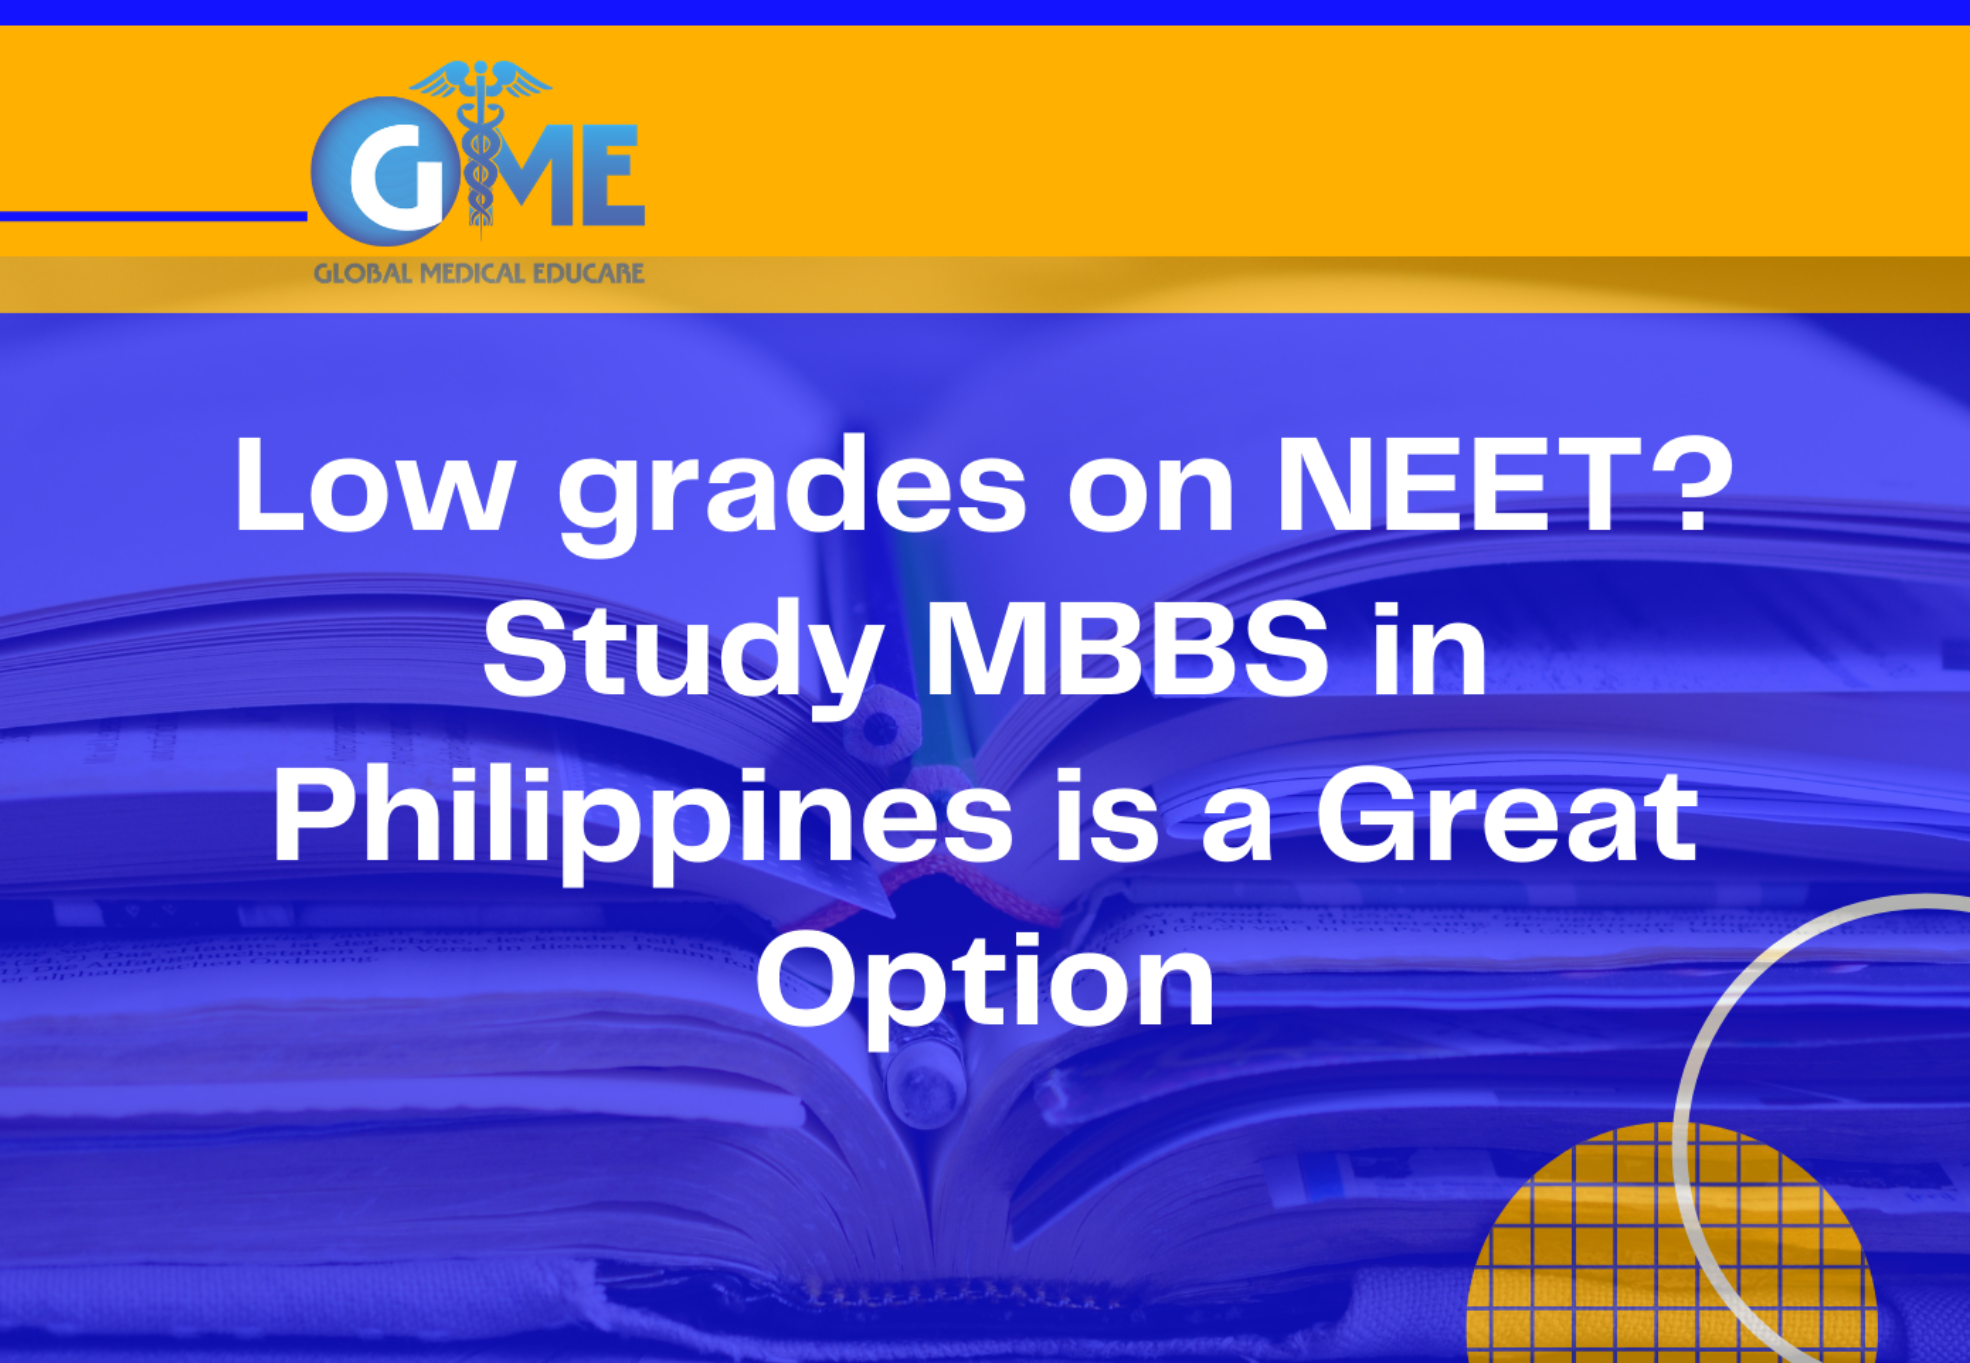 Low grades on NEET? Study MBBS in Philippines is a Great Option